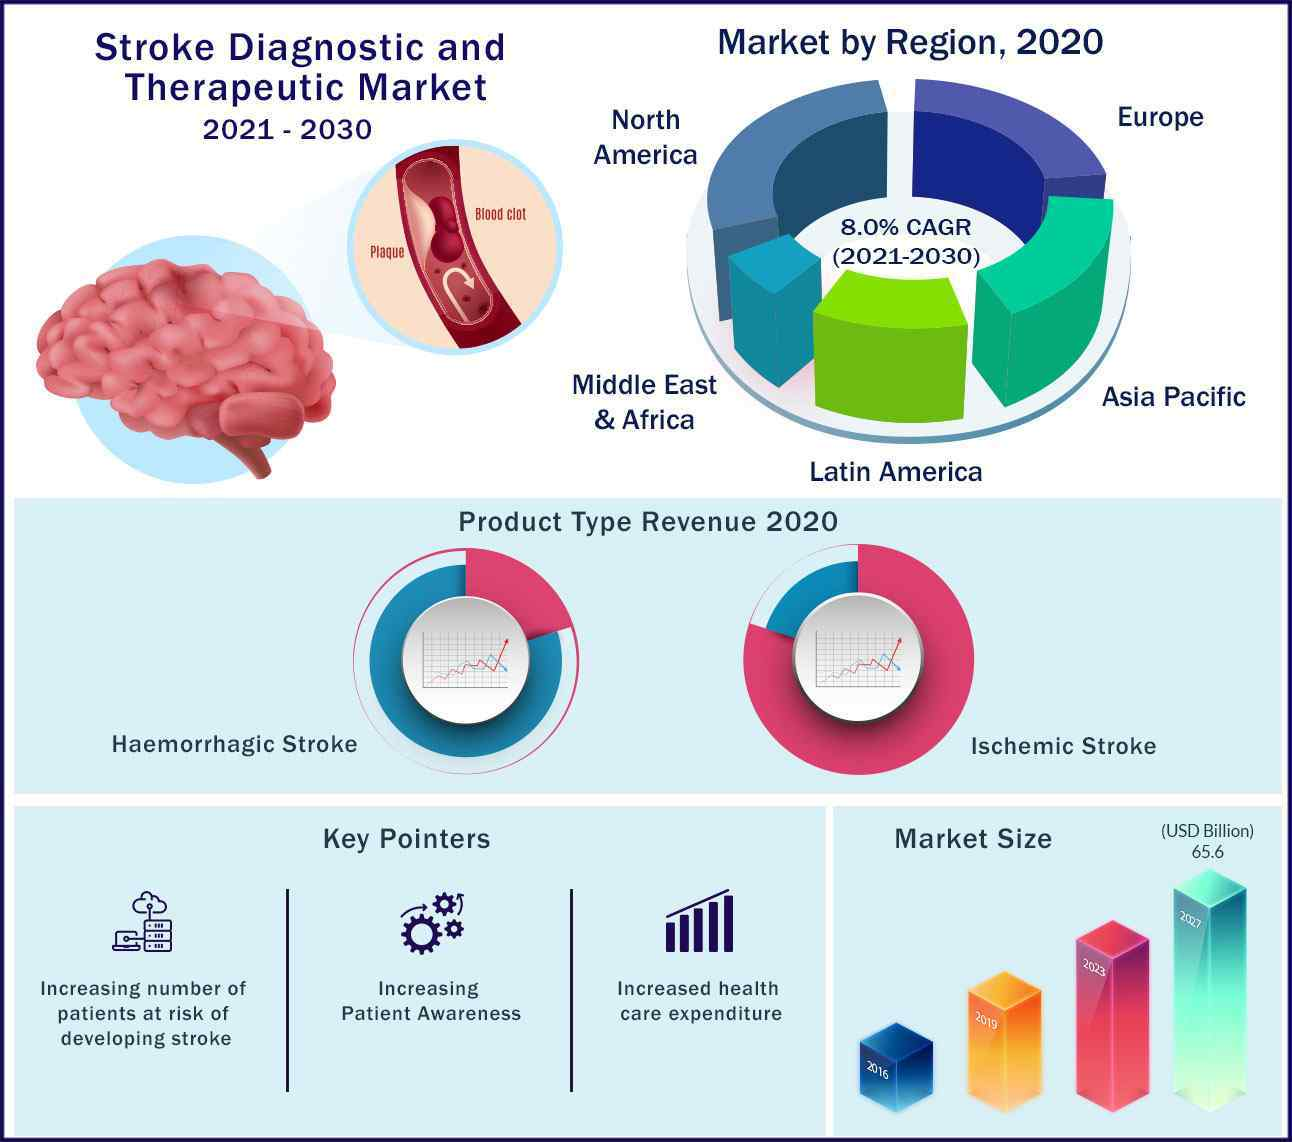 Global Stroke Diagnostic and Therapeutic Market 2021 to 2030